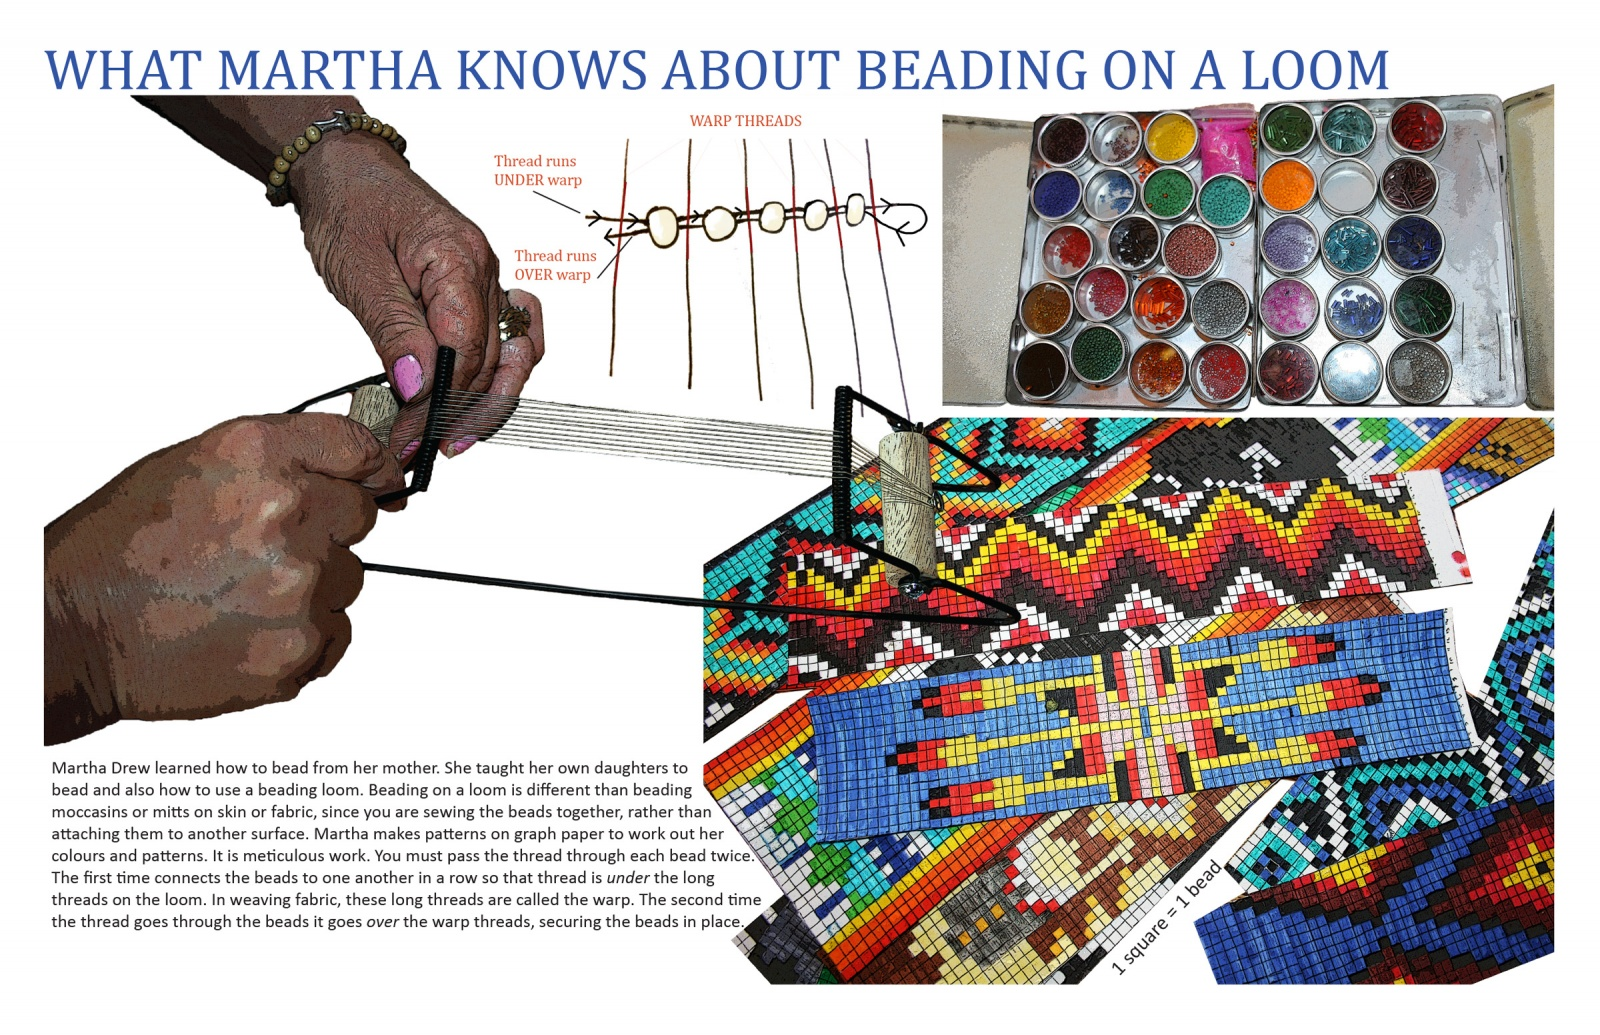 What Martha Knows About Beading on a Loom